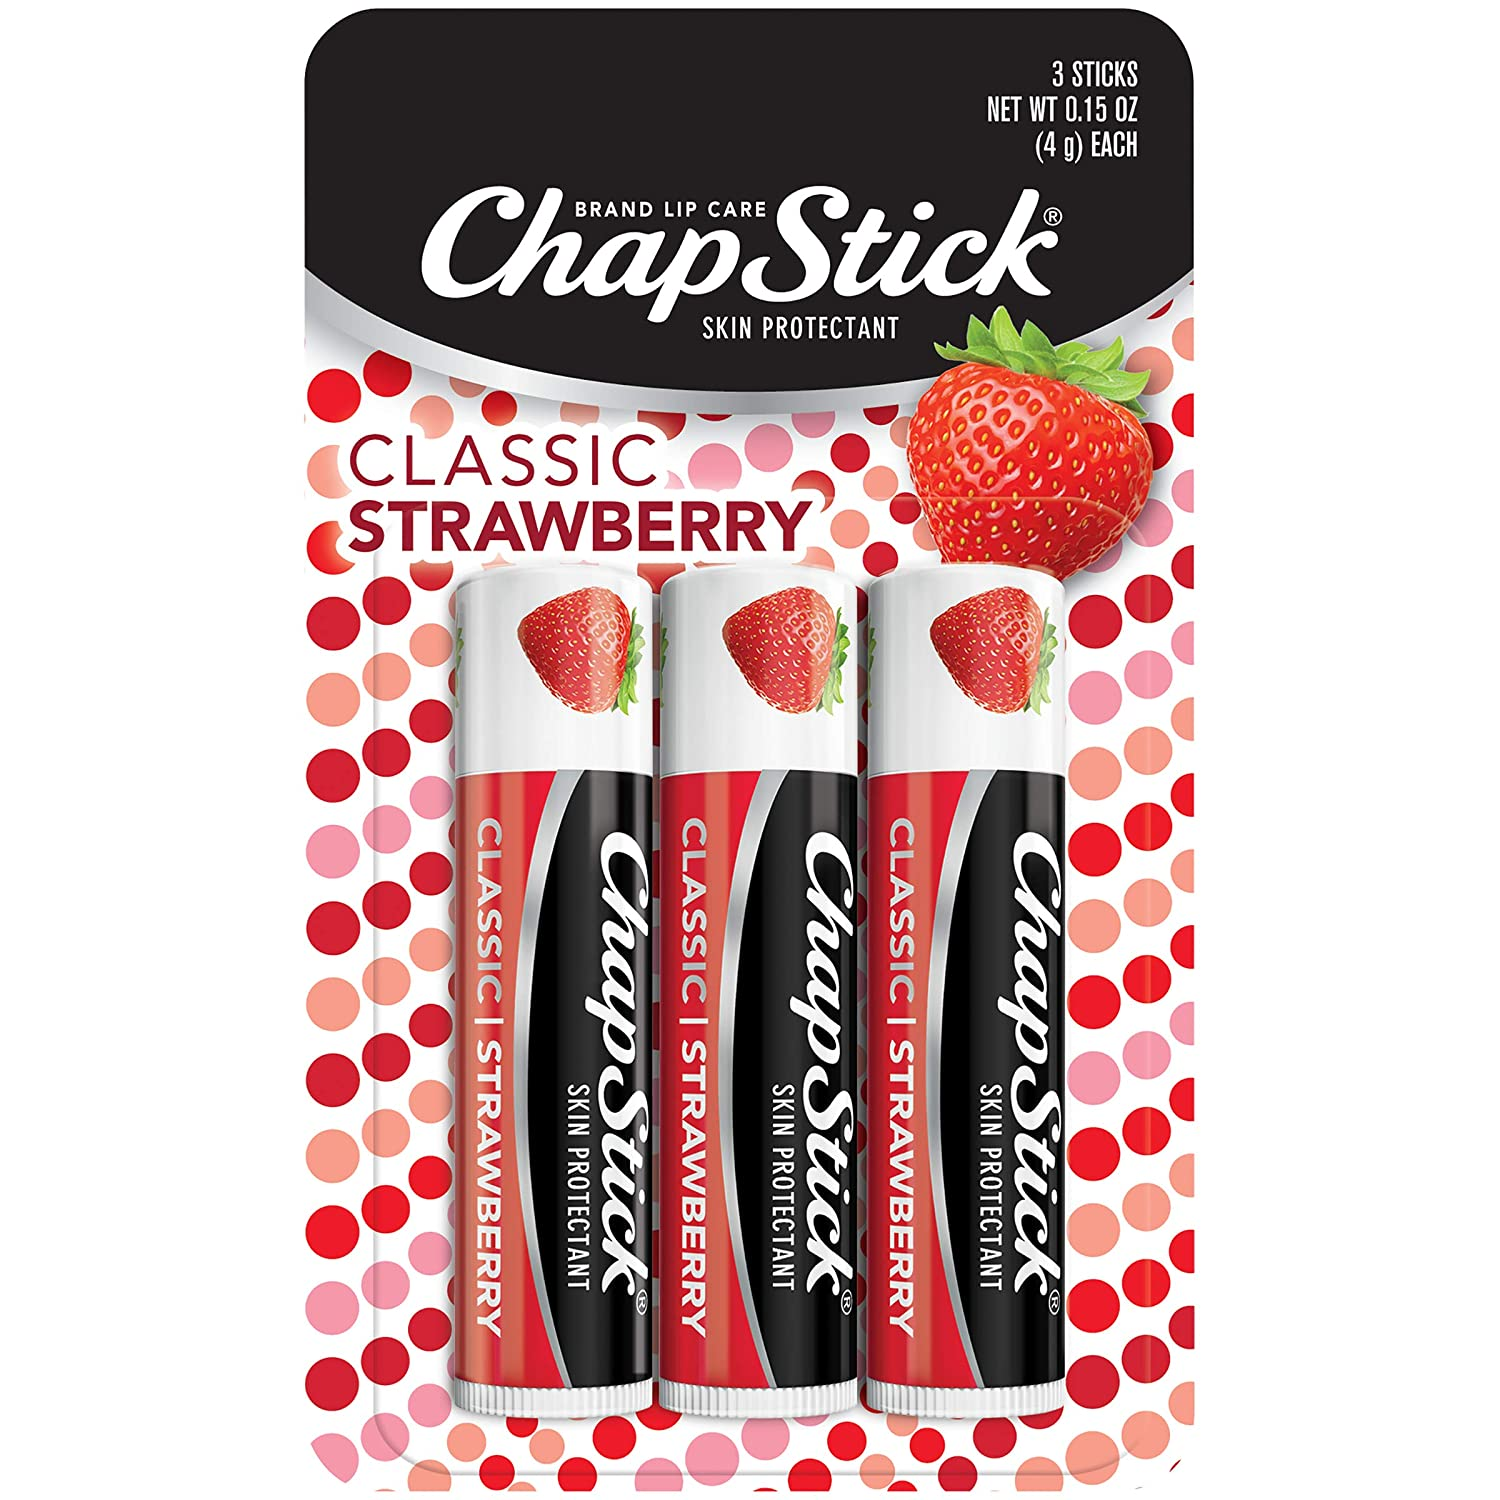 Chapstick Classic (1 Blister 3 Count Sticks, Strawberry Flavor) Skin Protectant Flavored Lip Balm Tube, 3 Count (Pack of 1)